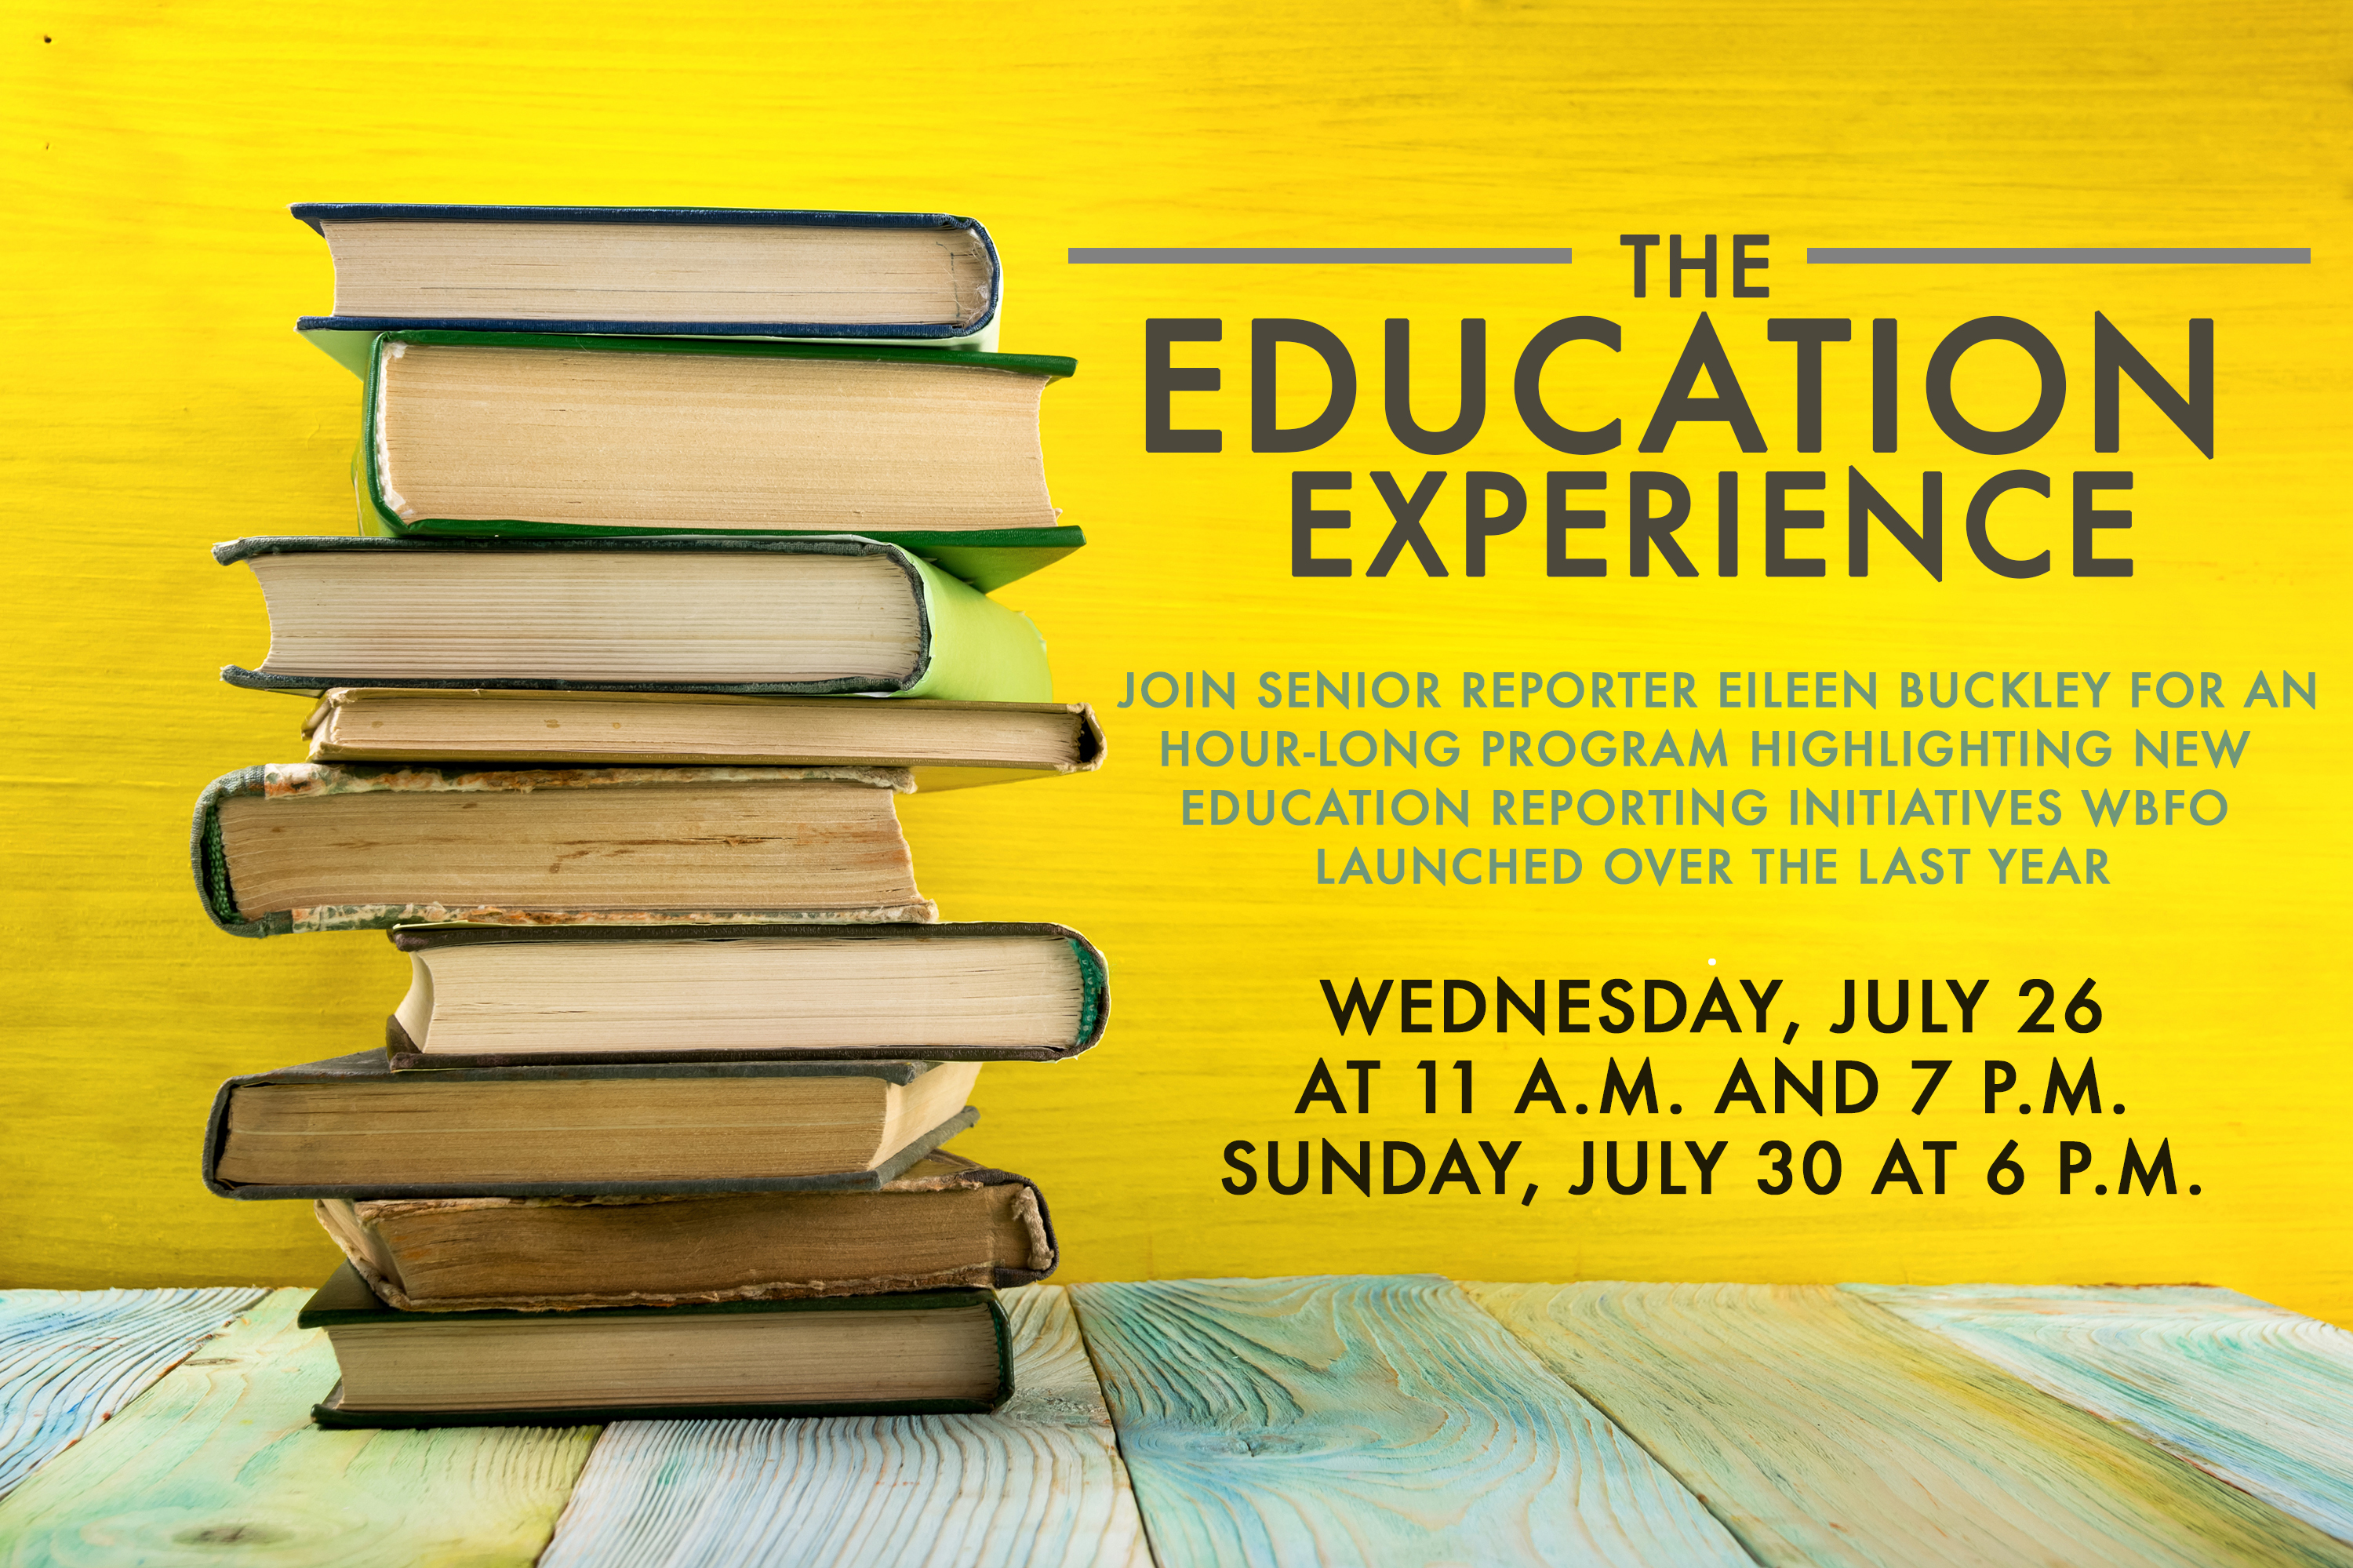 WBFO | The Education Experience